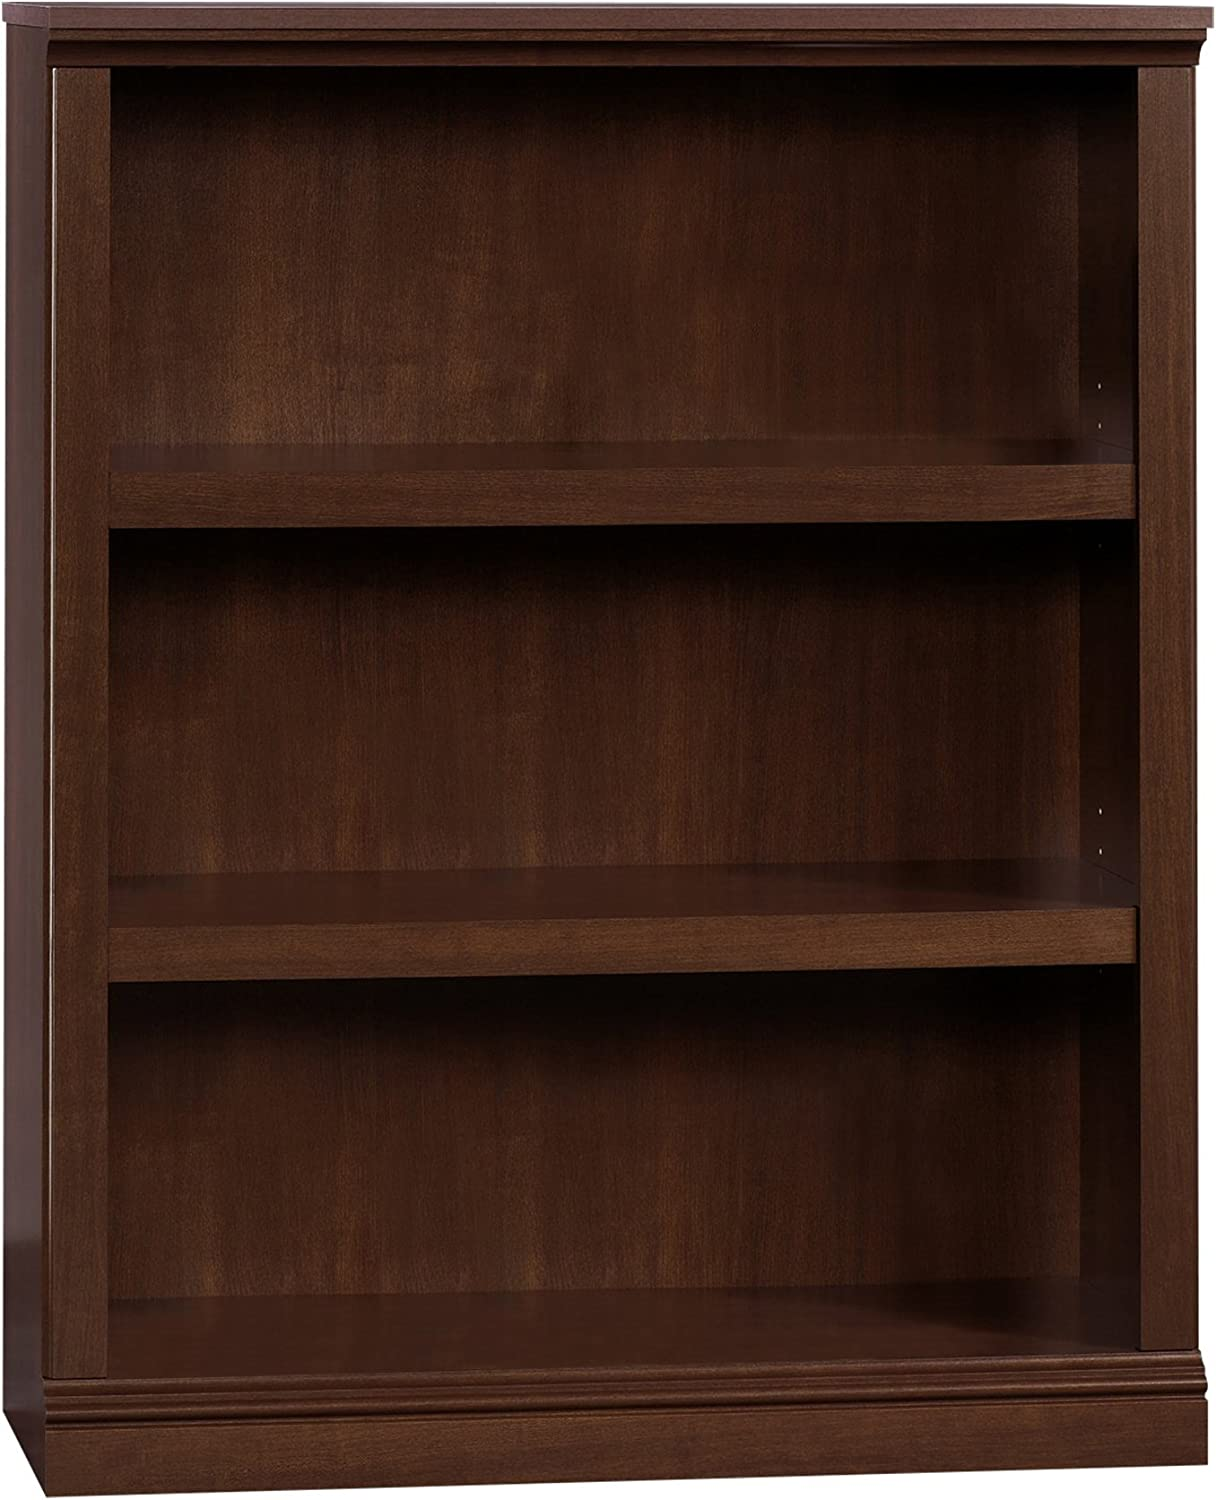 Sauder 3 Shelf Bookcase, L 35.28 x W 13.23 x H 43.78 , Select Cherry finish